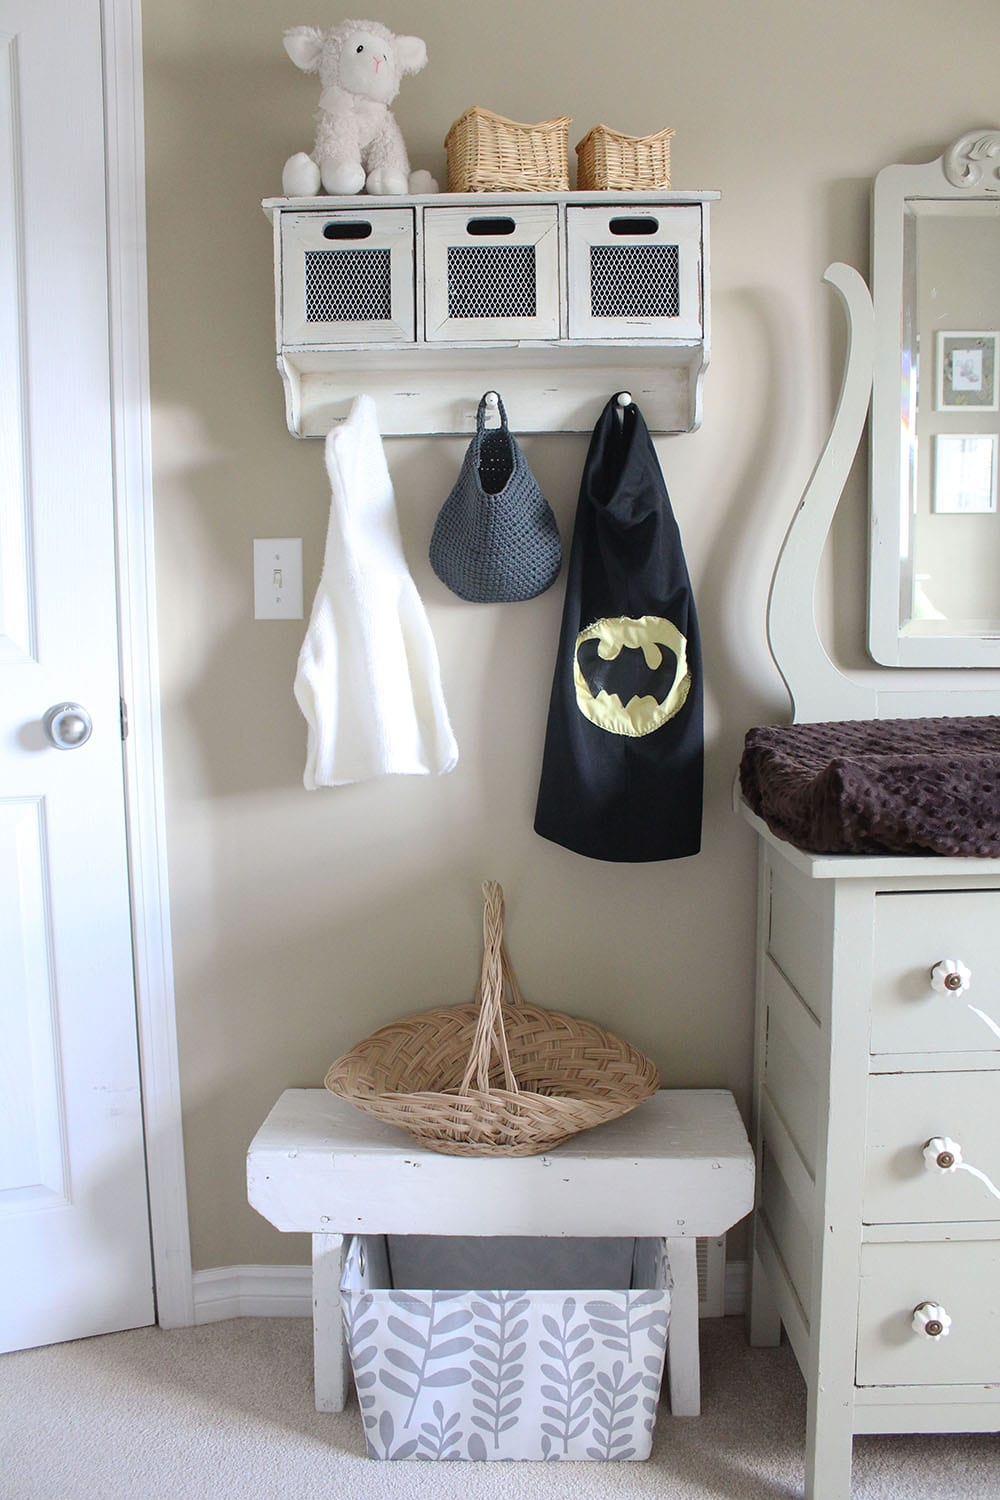 One of the easiest ways to create an eco-friendly kid's room is to use what you already have. Consider furniture and decor from all around your house. Because repurposing is super sustainable!